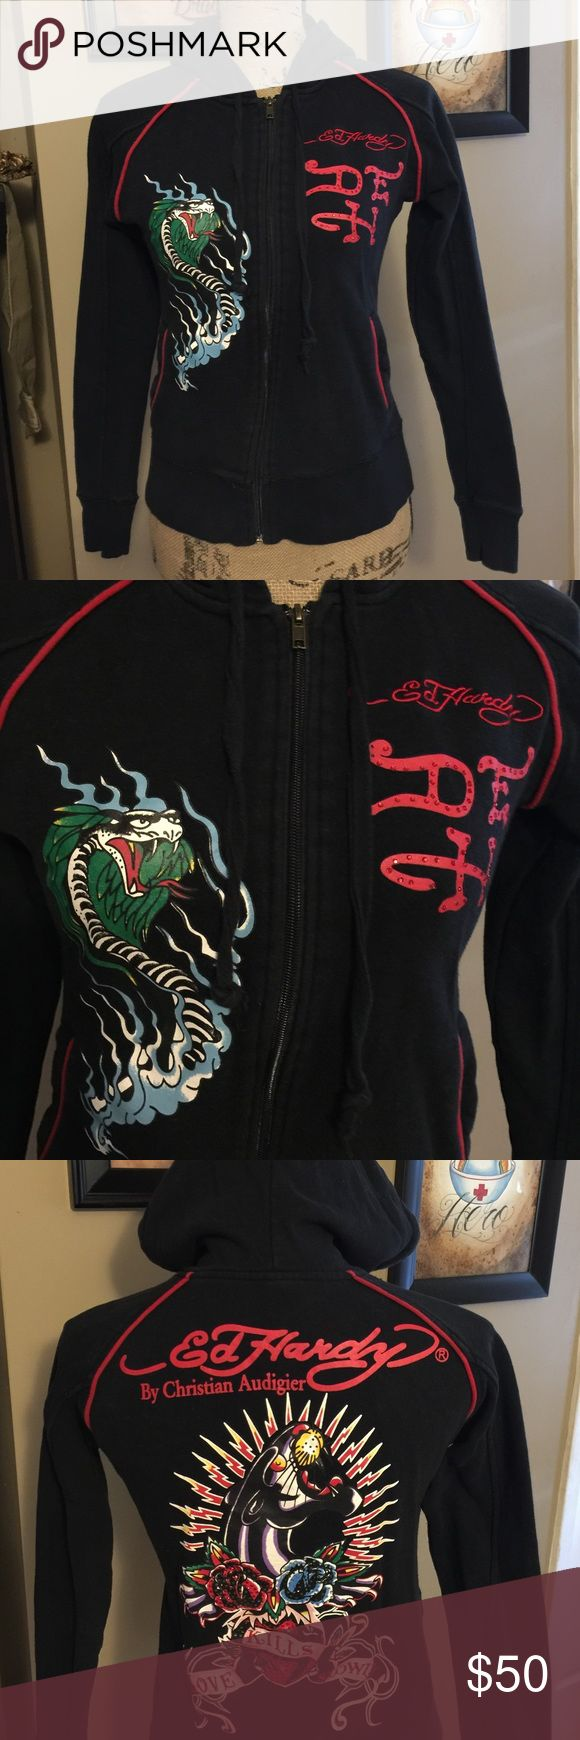 Vintage Ed Hardy Zip-Up by Christian Audigier Authentic Ed Hardy full zip black hoodie with red piping around the shoulders and lining the 2 front pockets. Great used condition. No flaws except a tiny bit faded. Still plenty of wear left and it is gorgeous! Very traditional style with a dragon on the right side on the front and Ed Hardys signature stitched in red with his initials below with just the right amount of red Bling! Panther on the back with rhinestoned roses. Love kills slowly is…